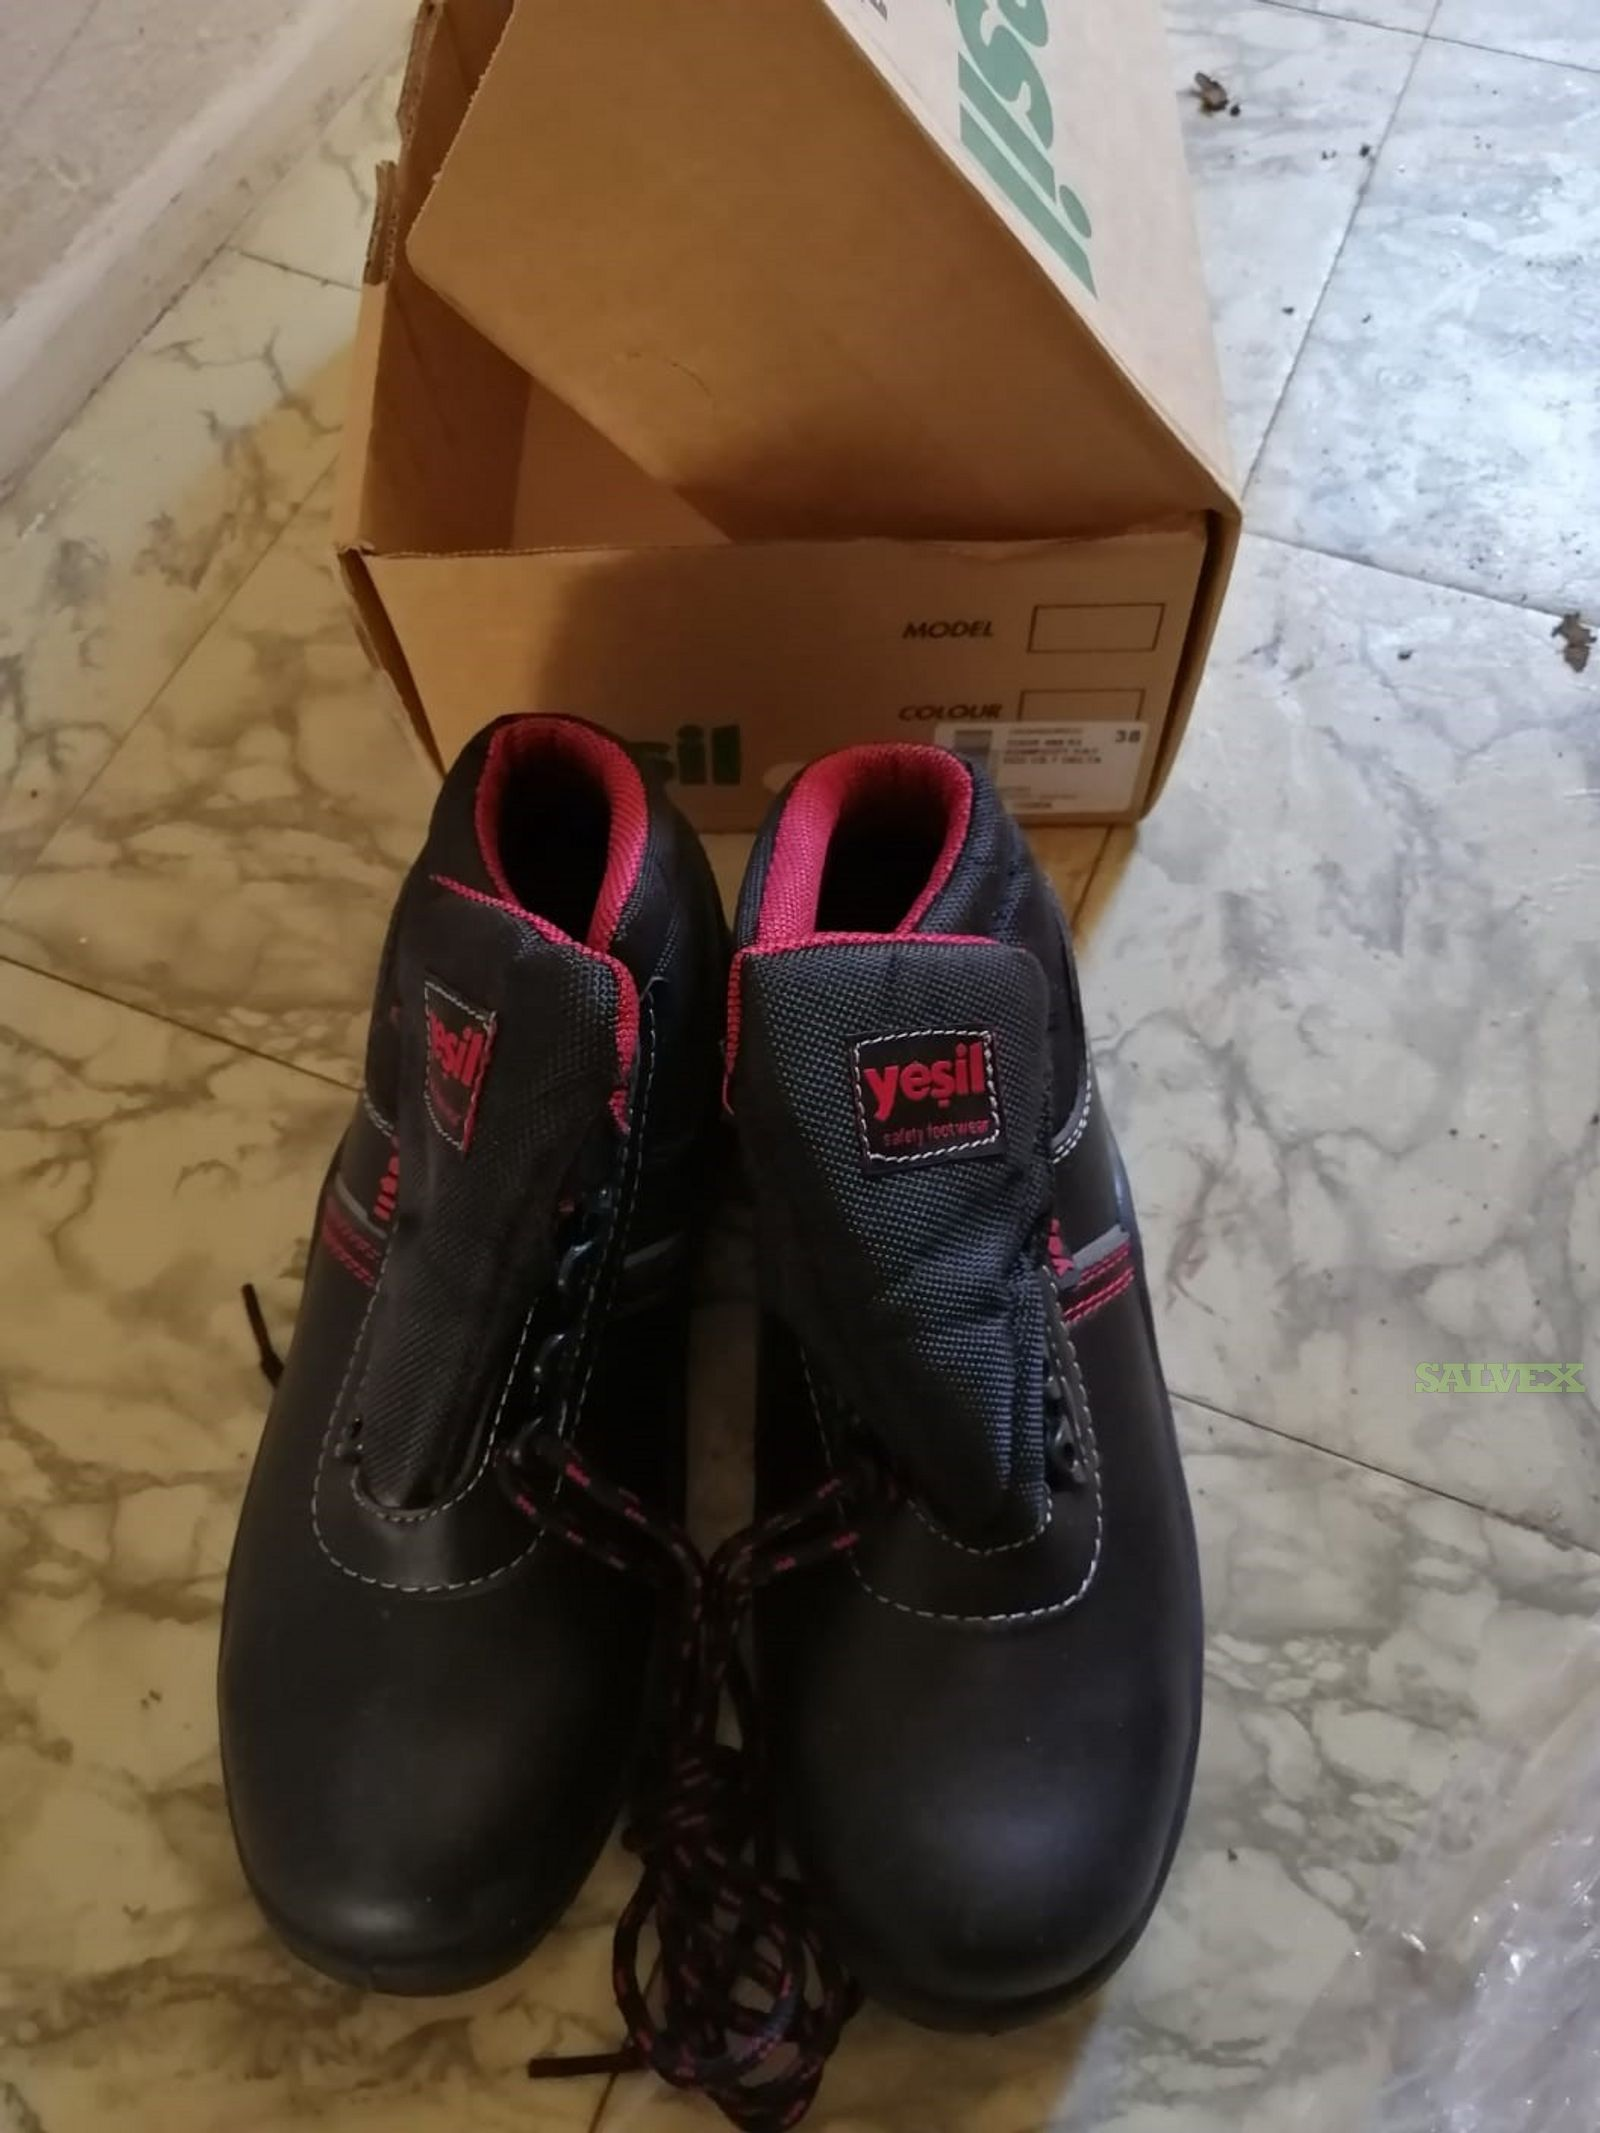 YDS&YESIL Shoes for Work (605 Units)